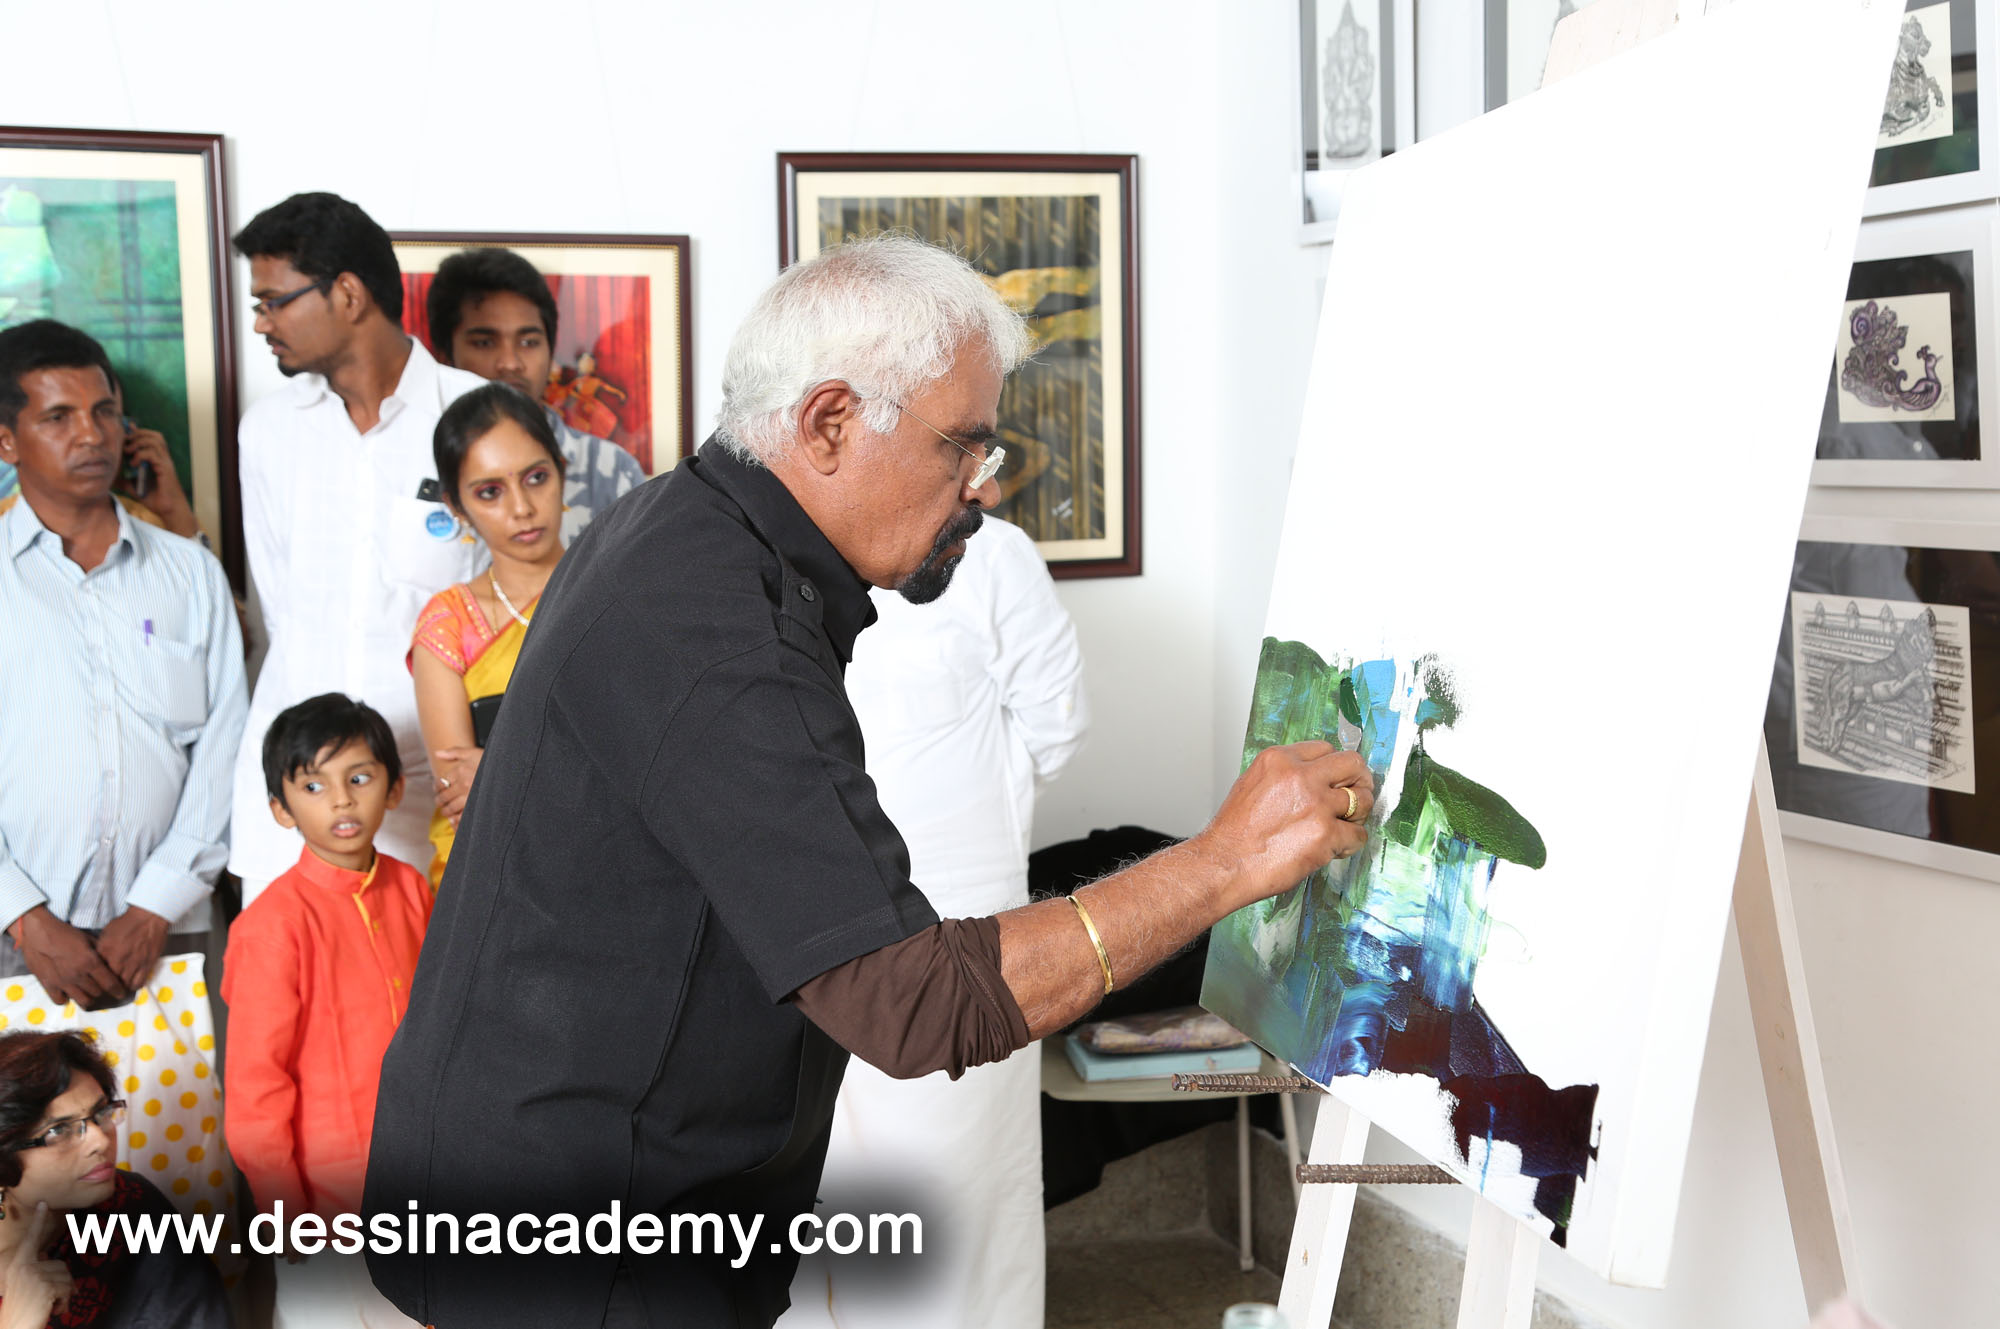 Dessin School of arts Event Gallery 2, canvas painting School in Anna Nagar P BlockPearl Kids International